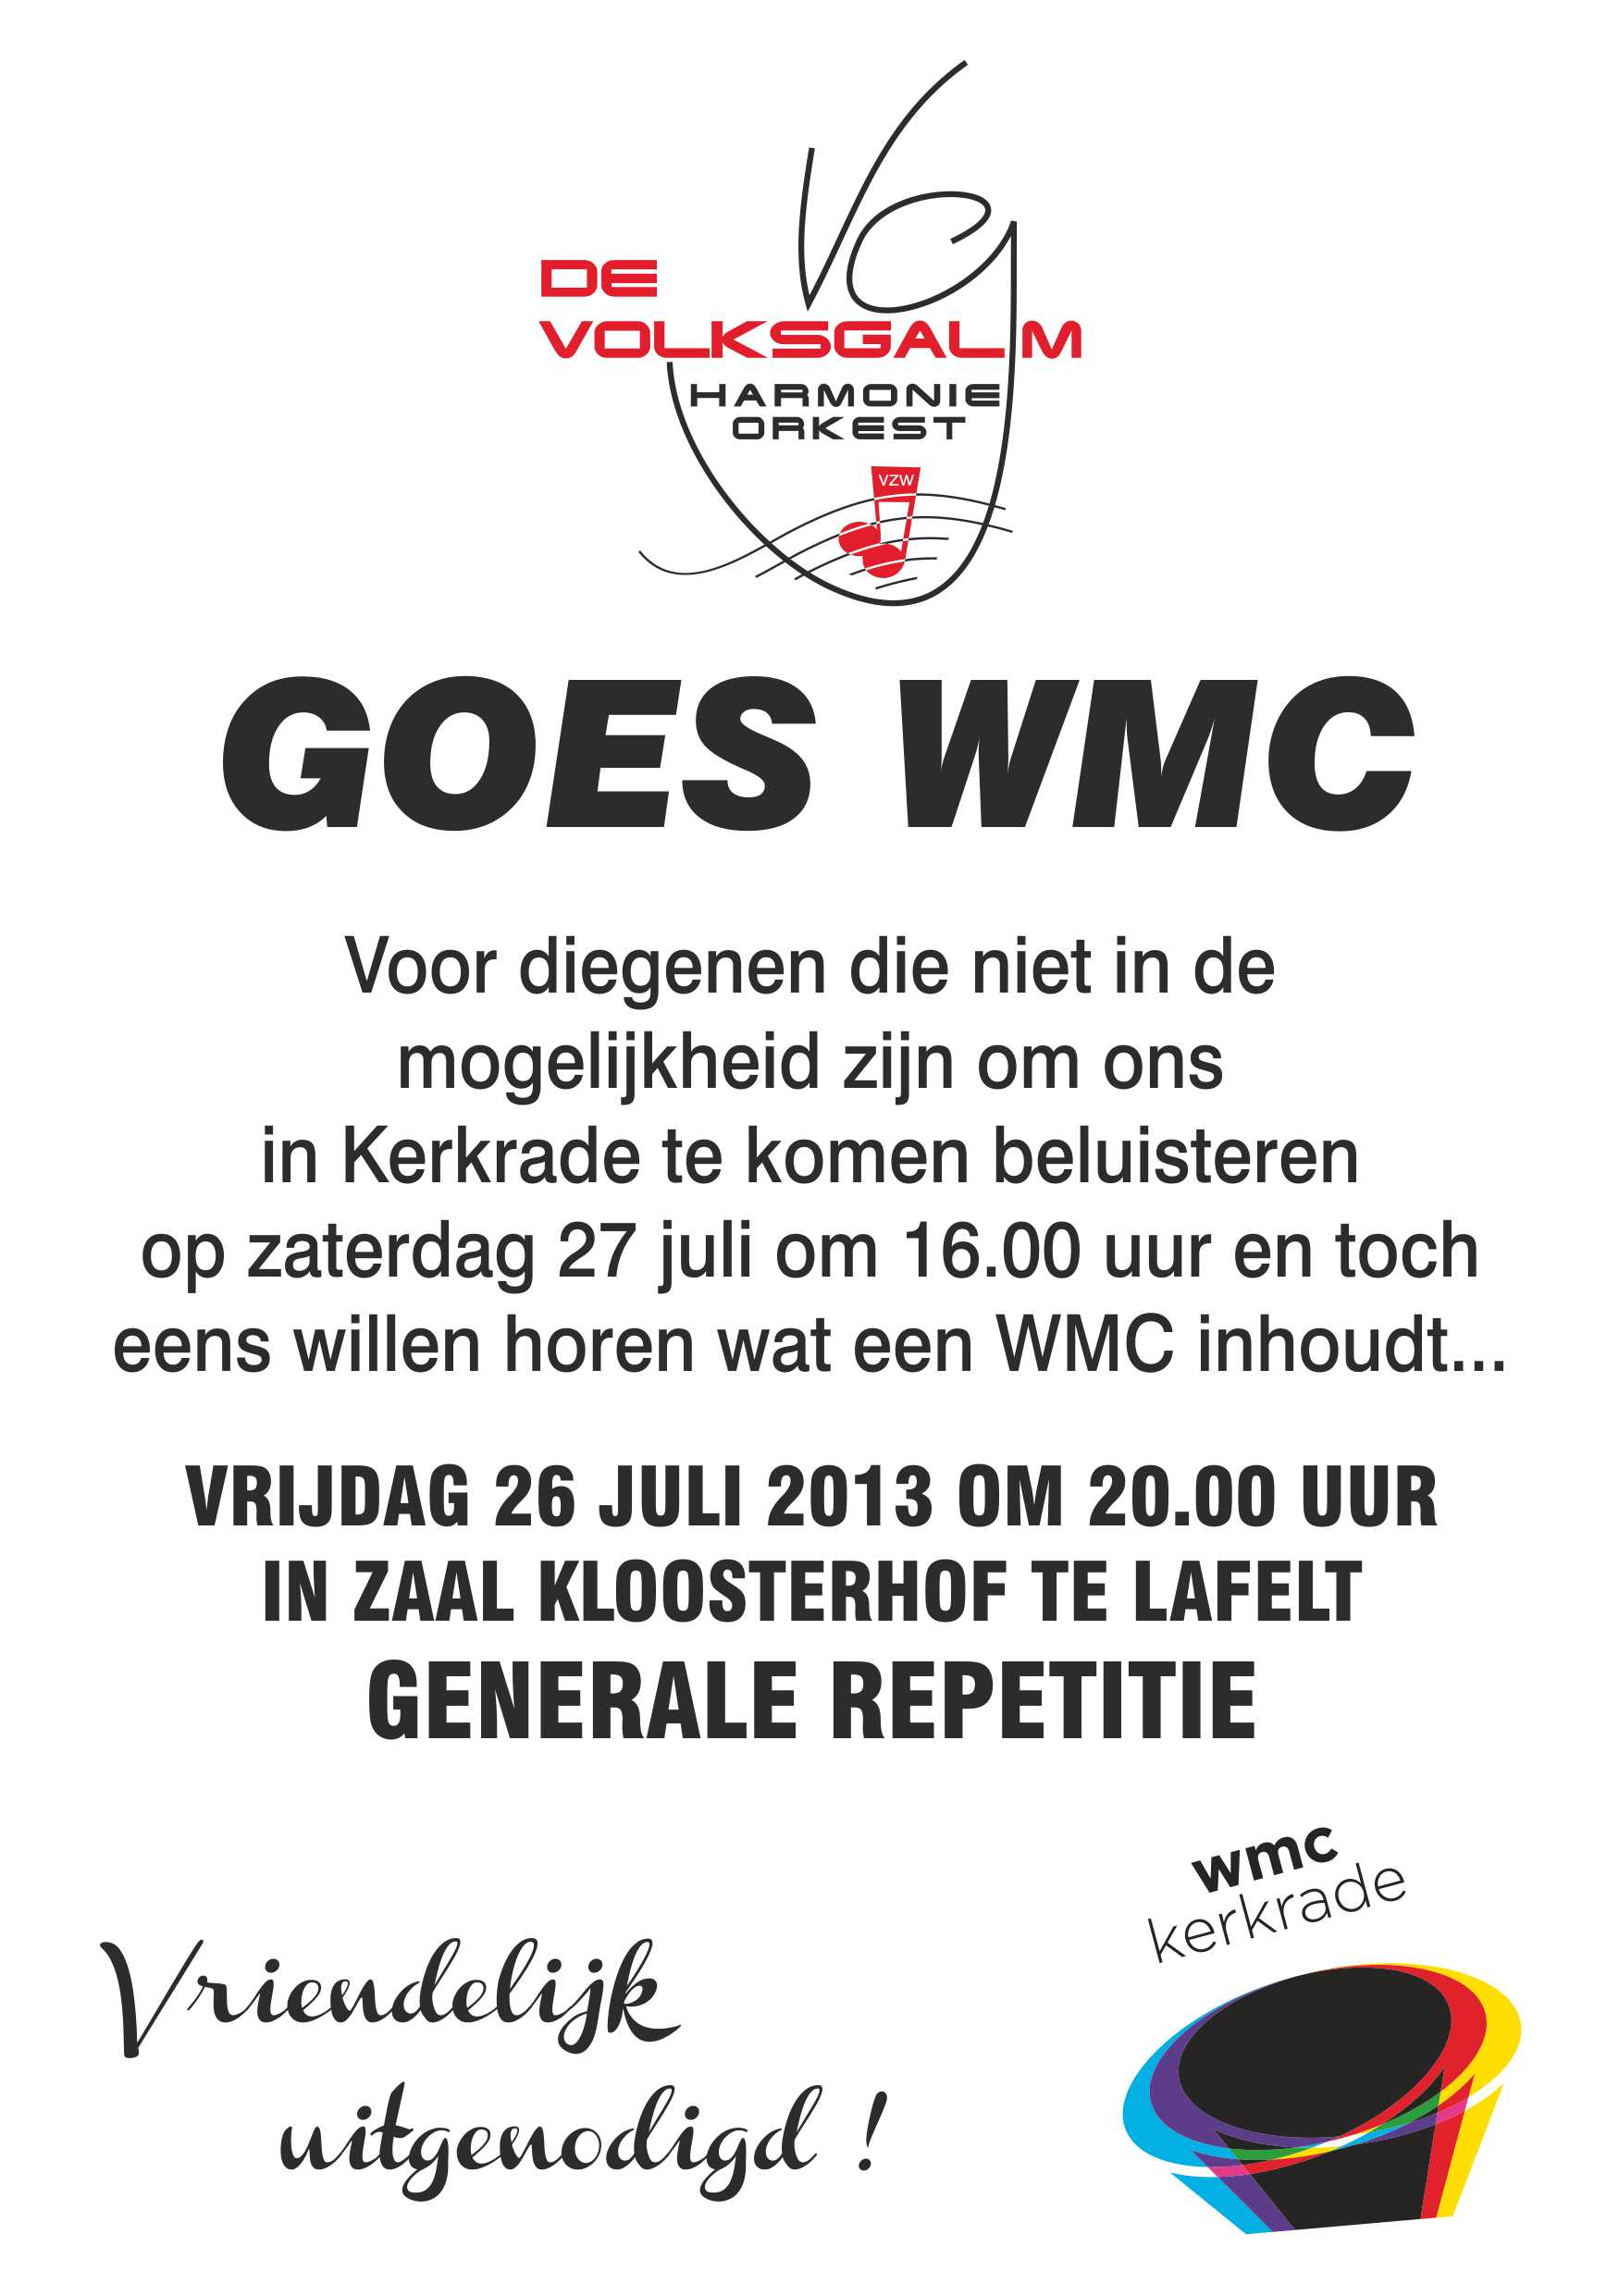 WMC generale repetitie